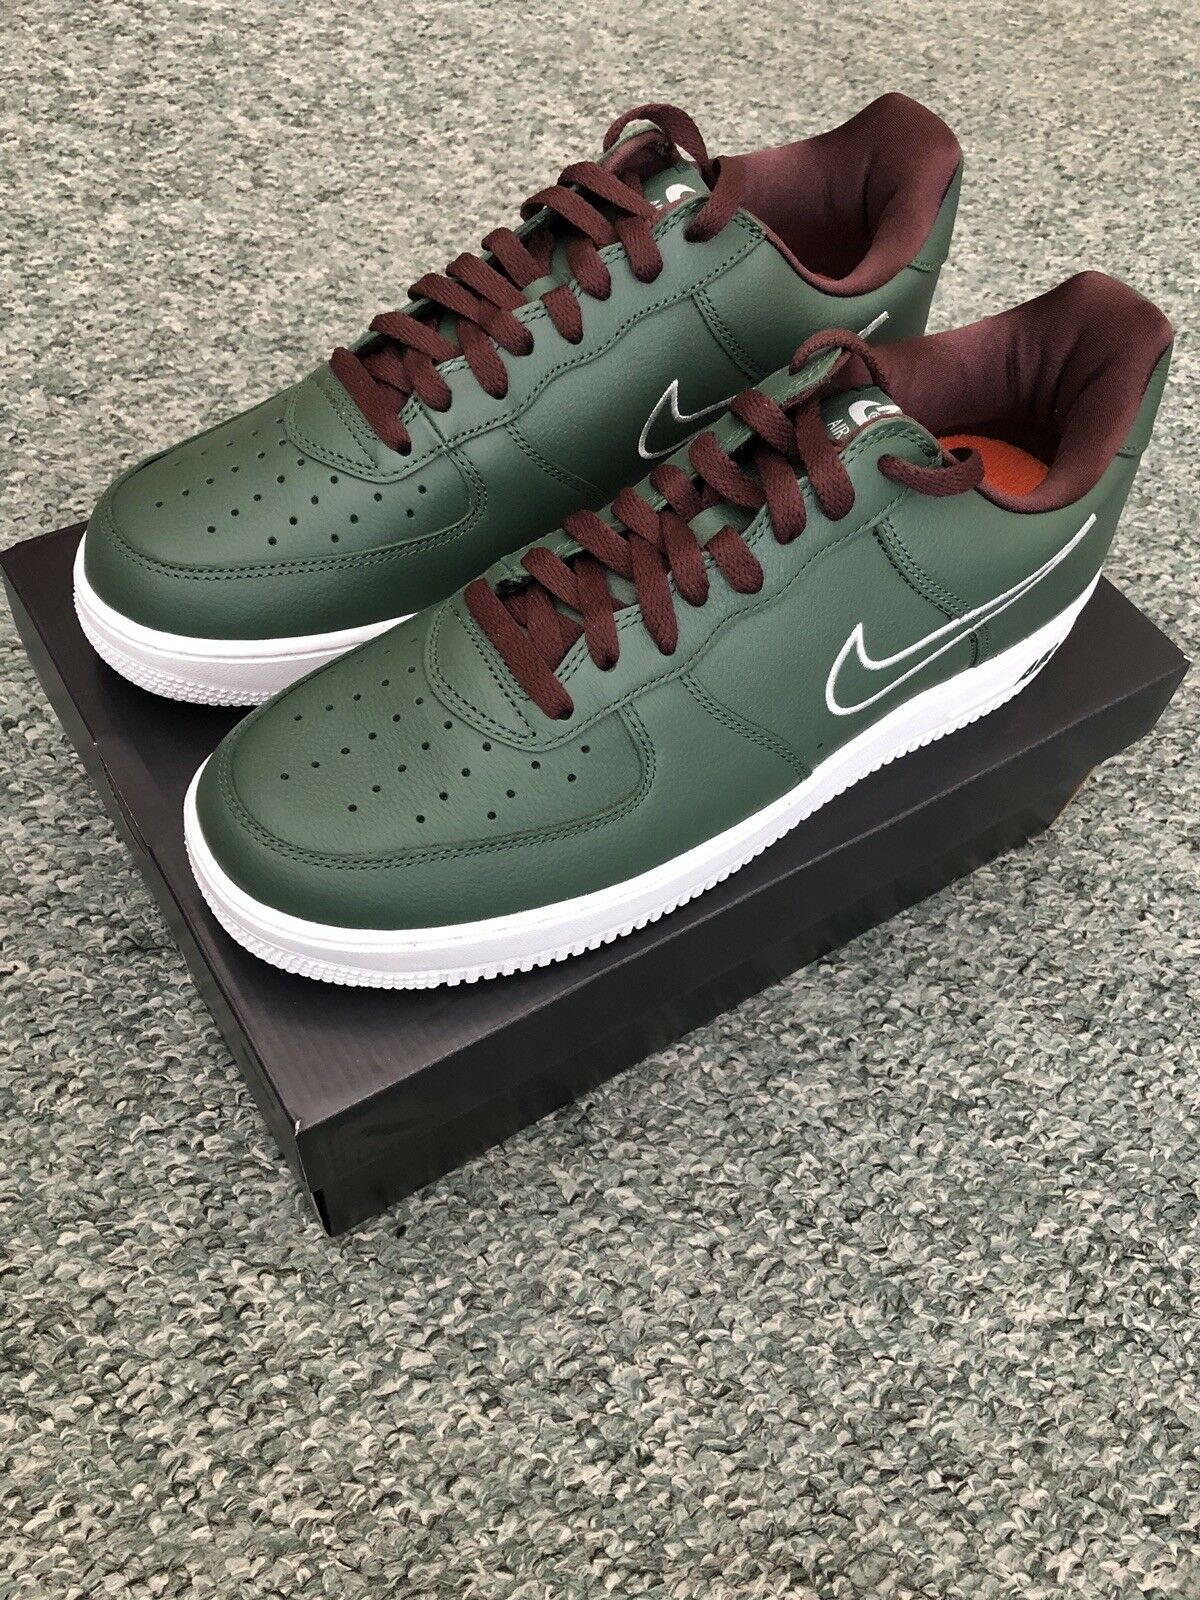 Nike Air Force 1 Low Hong Kong Retro UK10